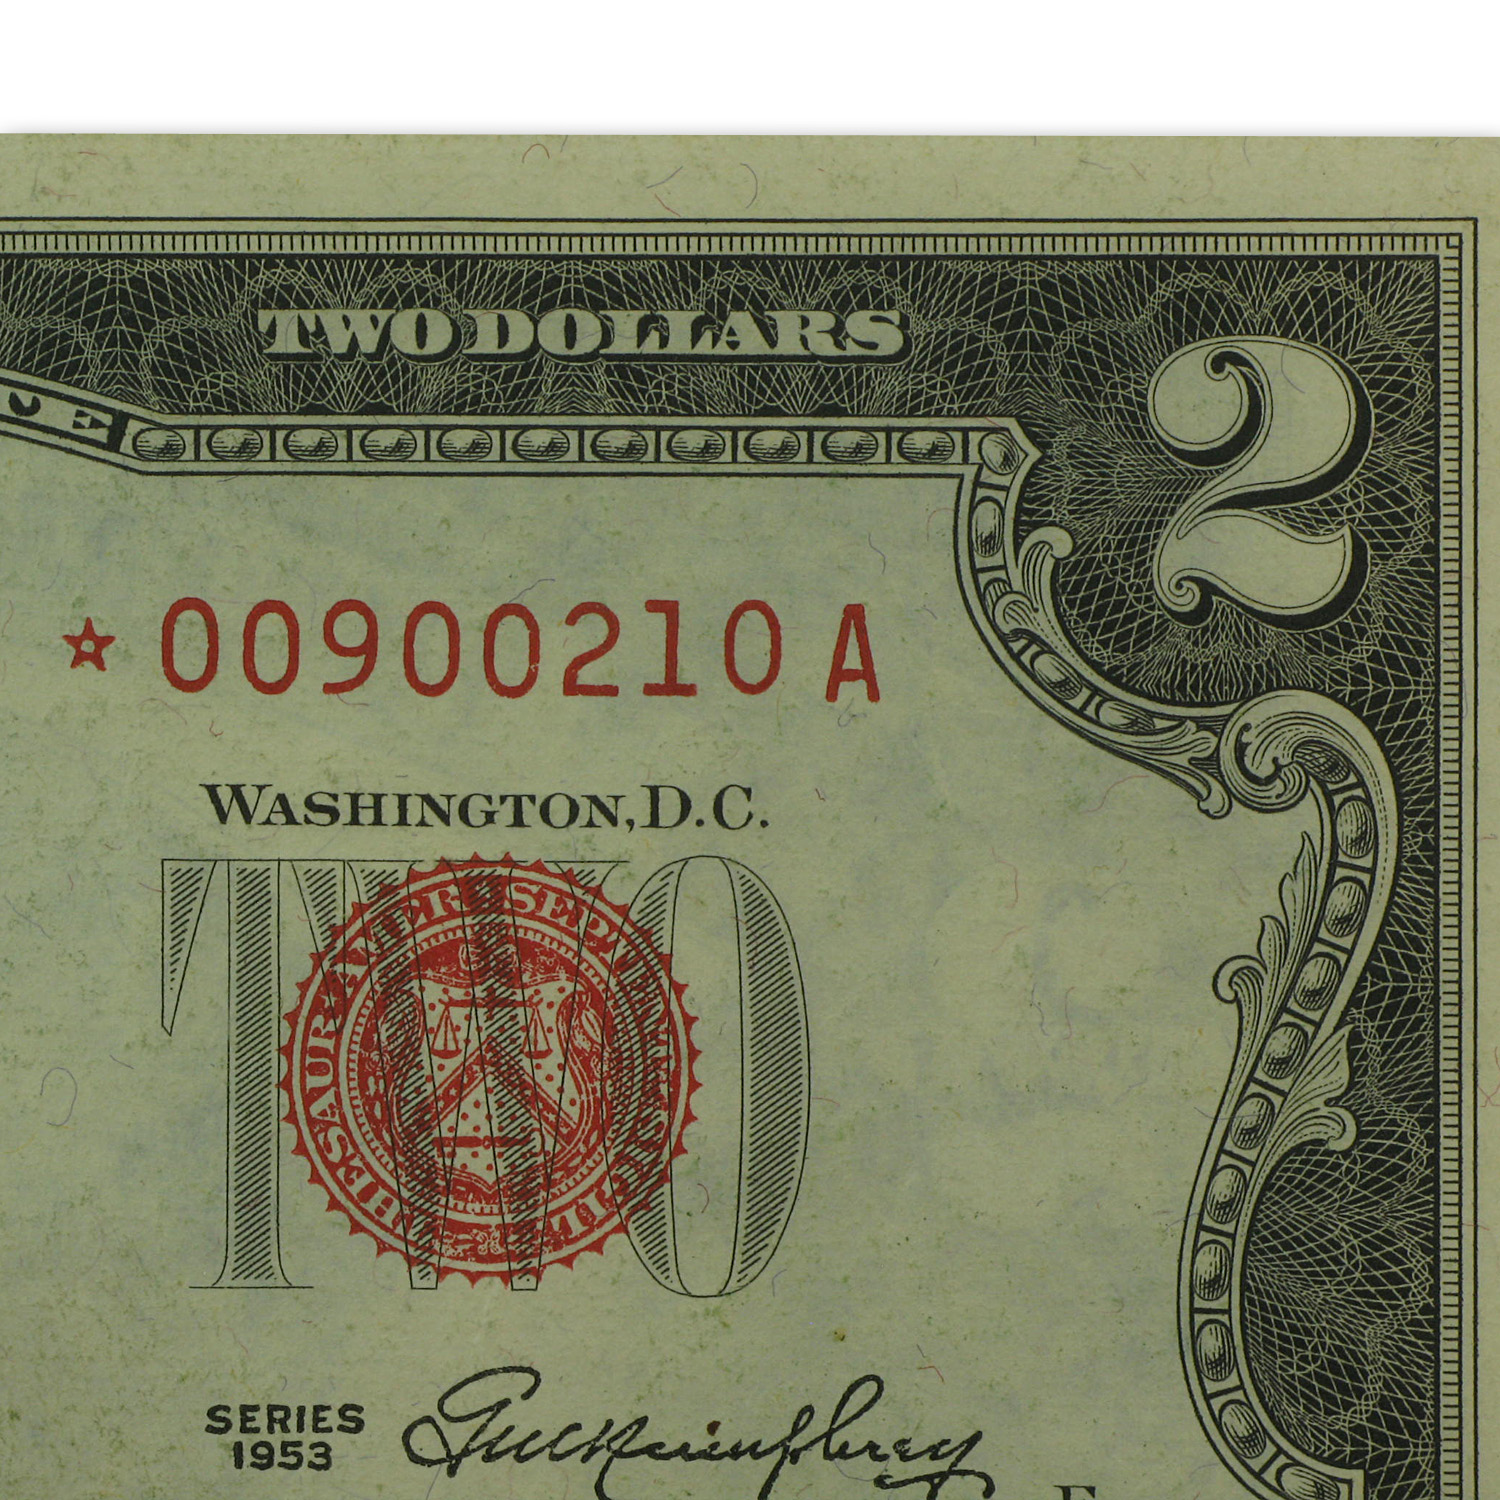 1953* $2.00 U.S. Note Red Seal (Star Note) XF